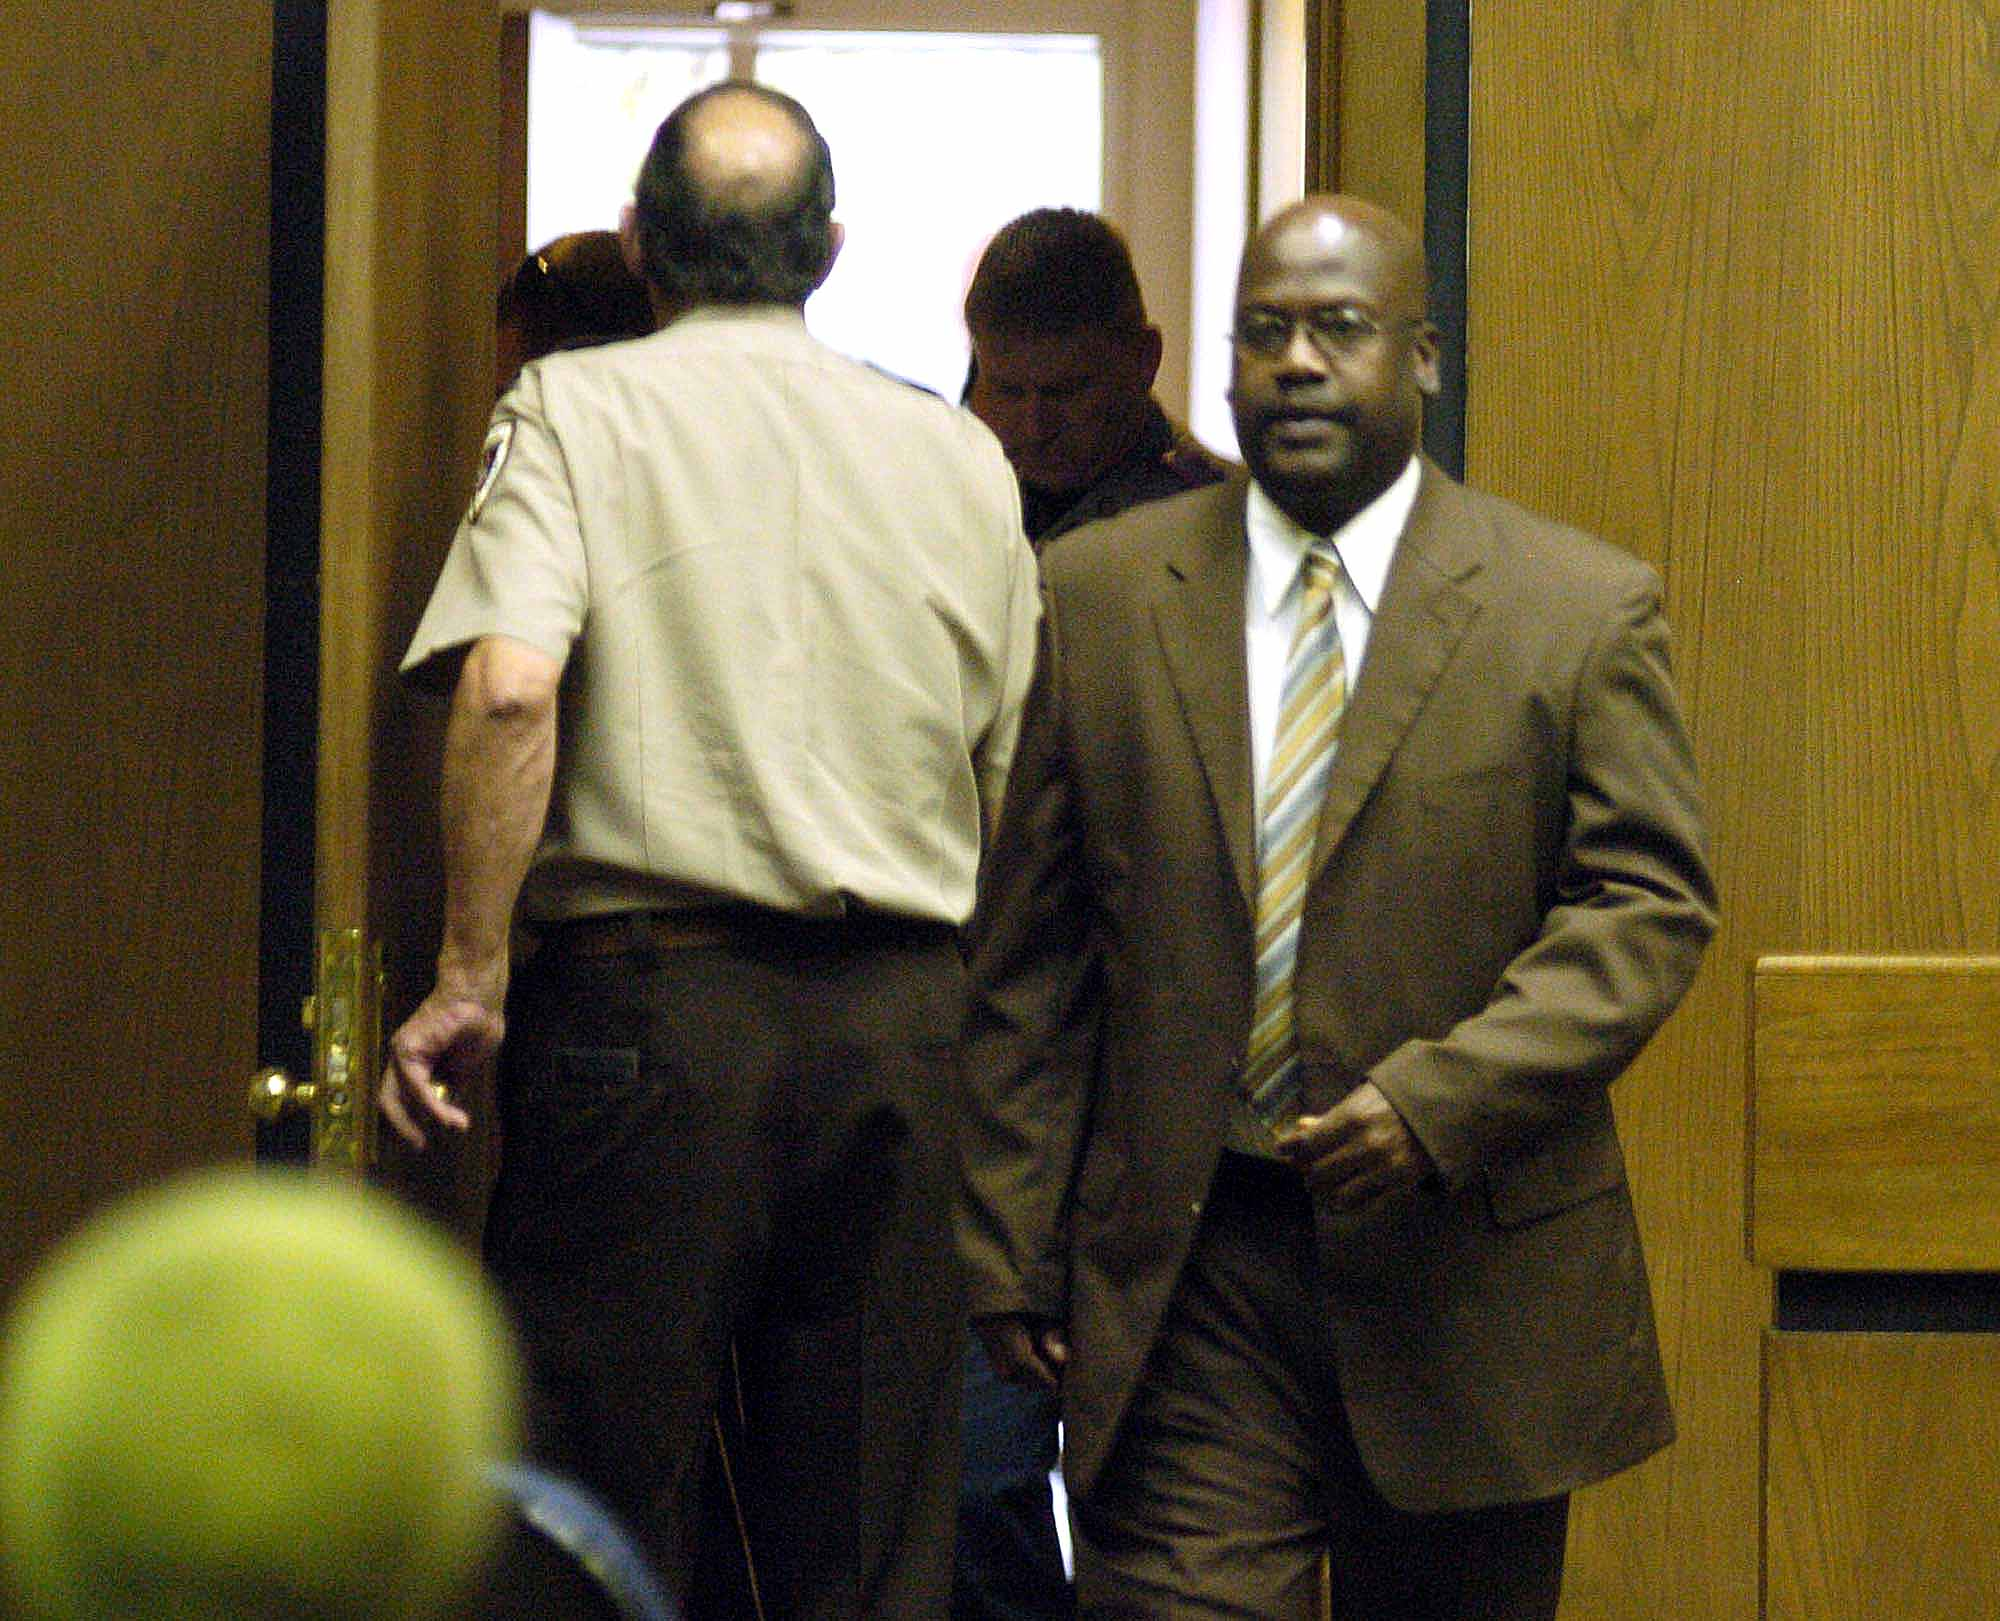 After six trials for 1996 killings, Mississippi man's case goes to the Supreme Court